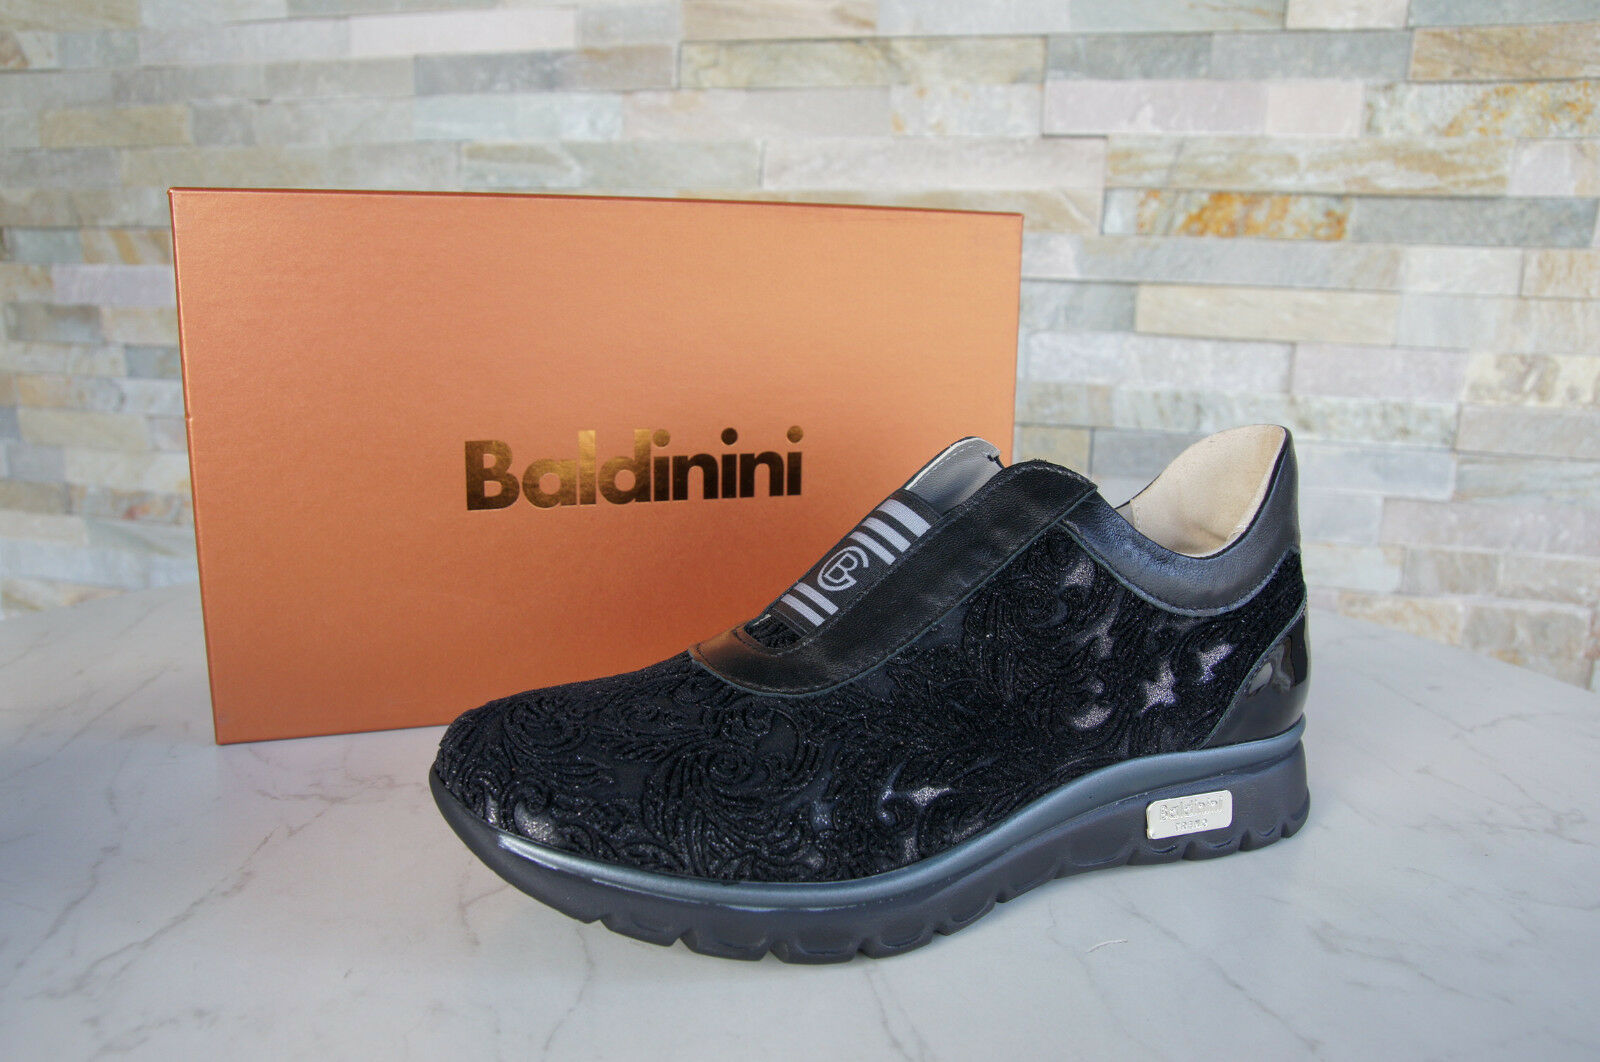 Baldinini 37 Slippers Slip-On Low shoes 847390 shoes Black New Formerly Rrp